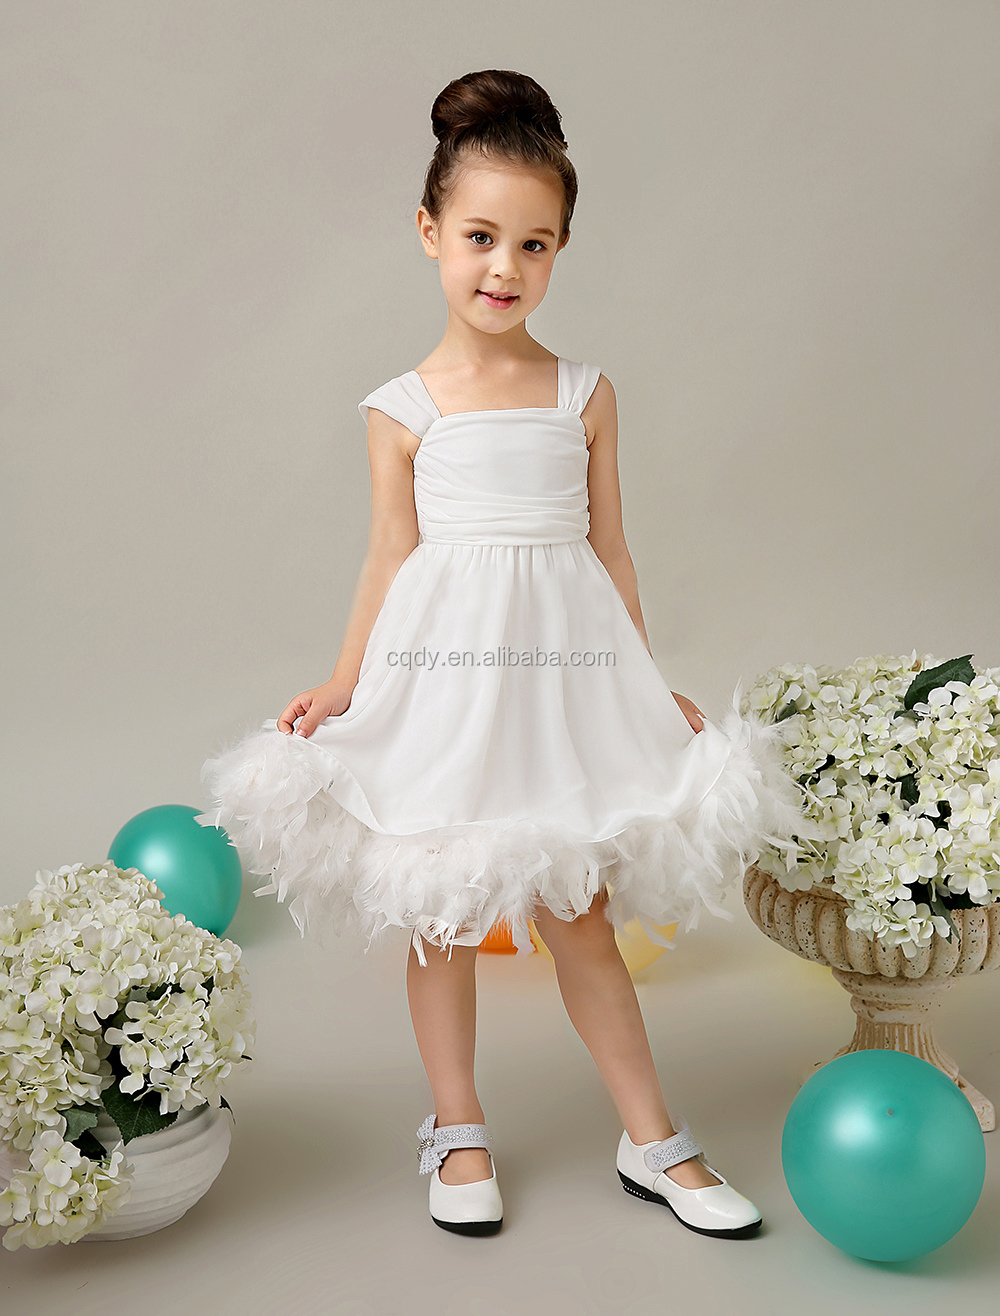 2017 china wholesale girl birthday dress for 7 years oldfeather 2017 china wholesale girl birthday dress for 7 years oldfeather fancy girl party wear ombrellifo Images